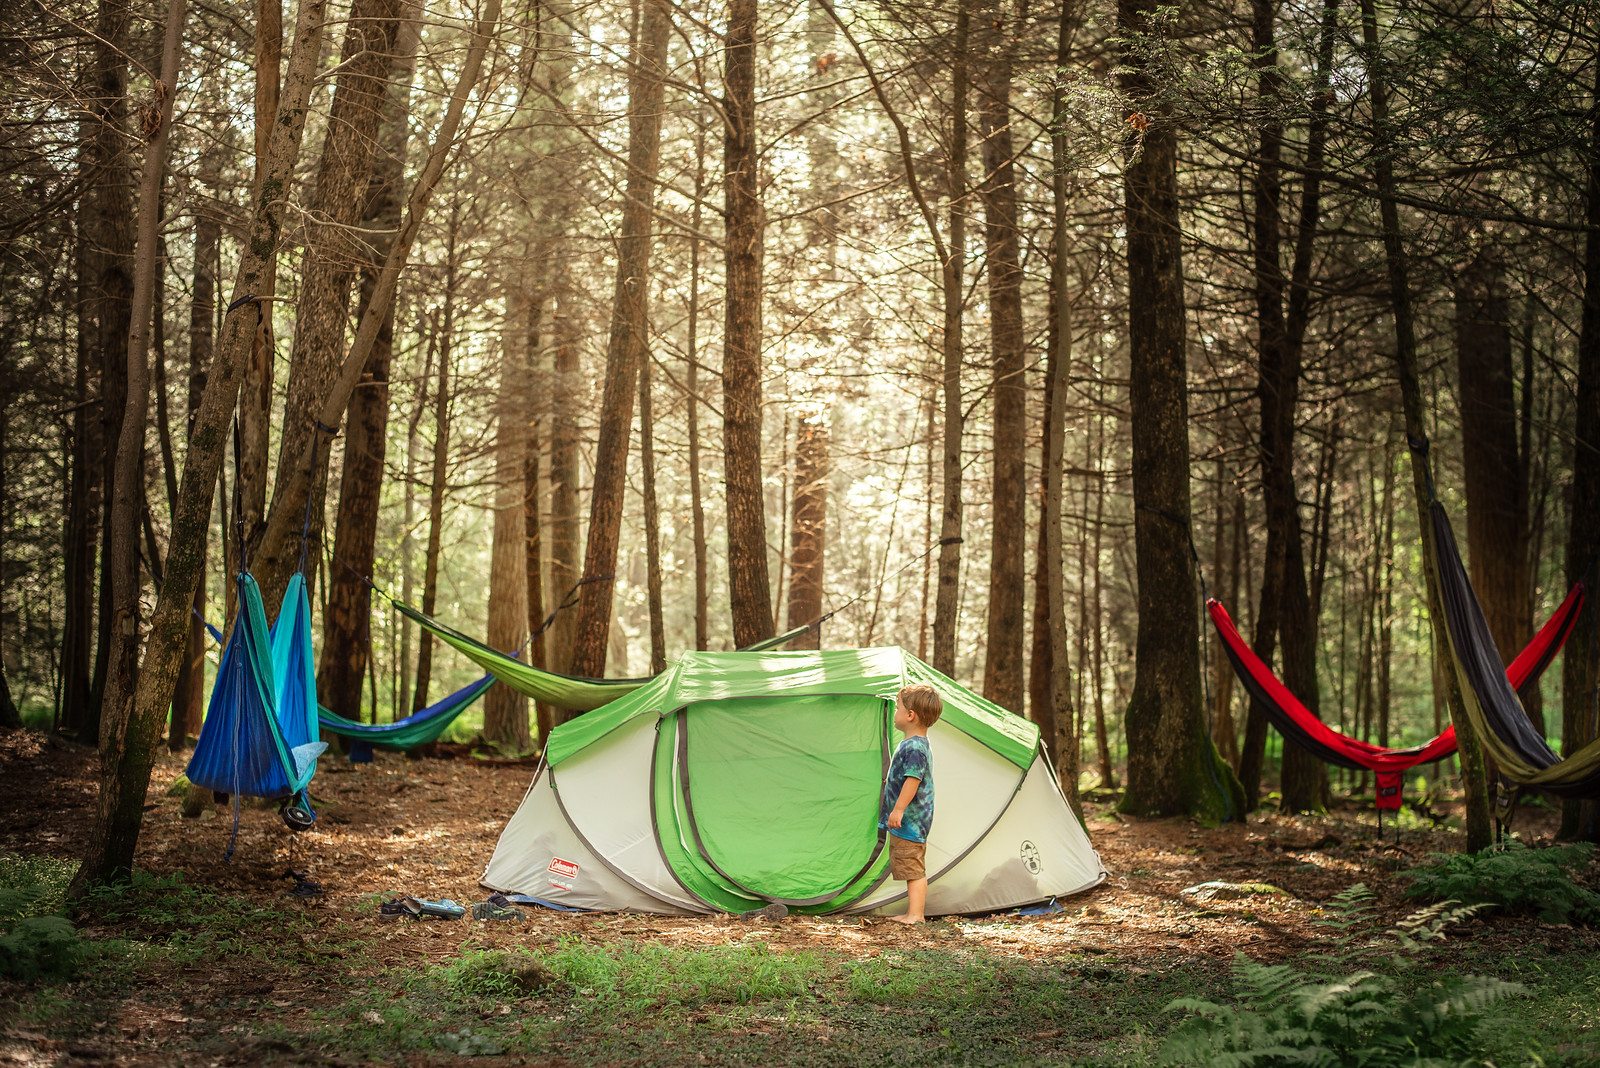 What to look for in a kid-friendly camping site by Jessica Nave for Hike it Baby